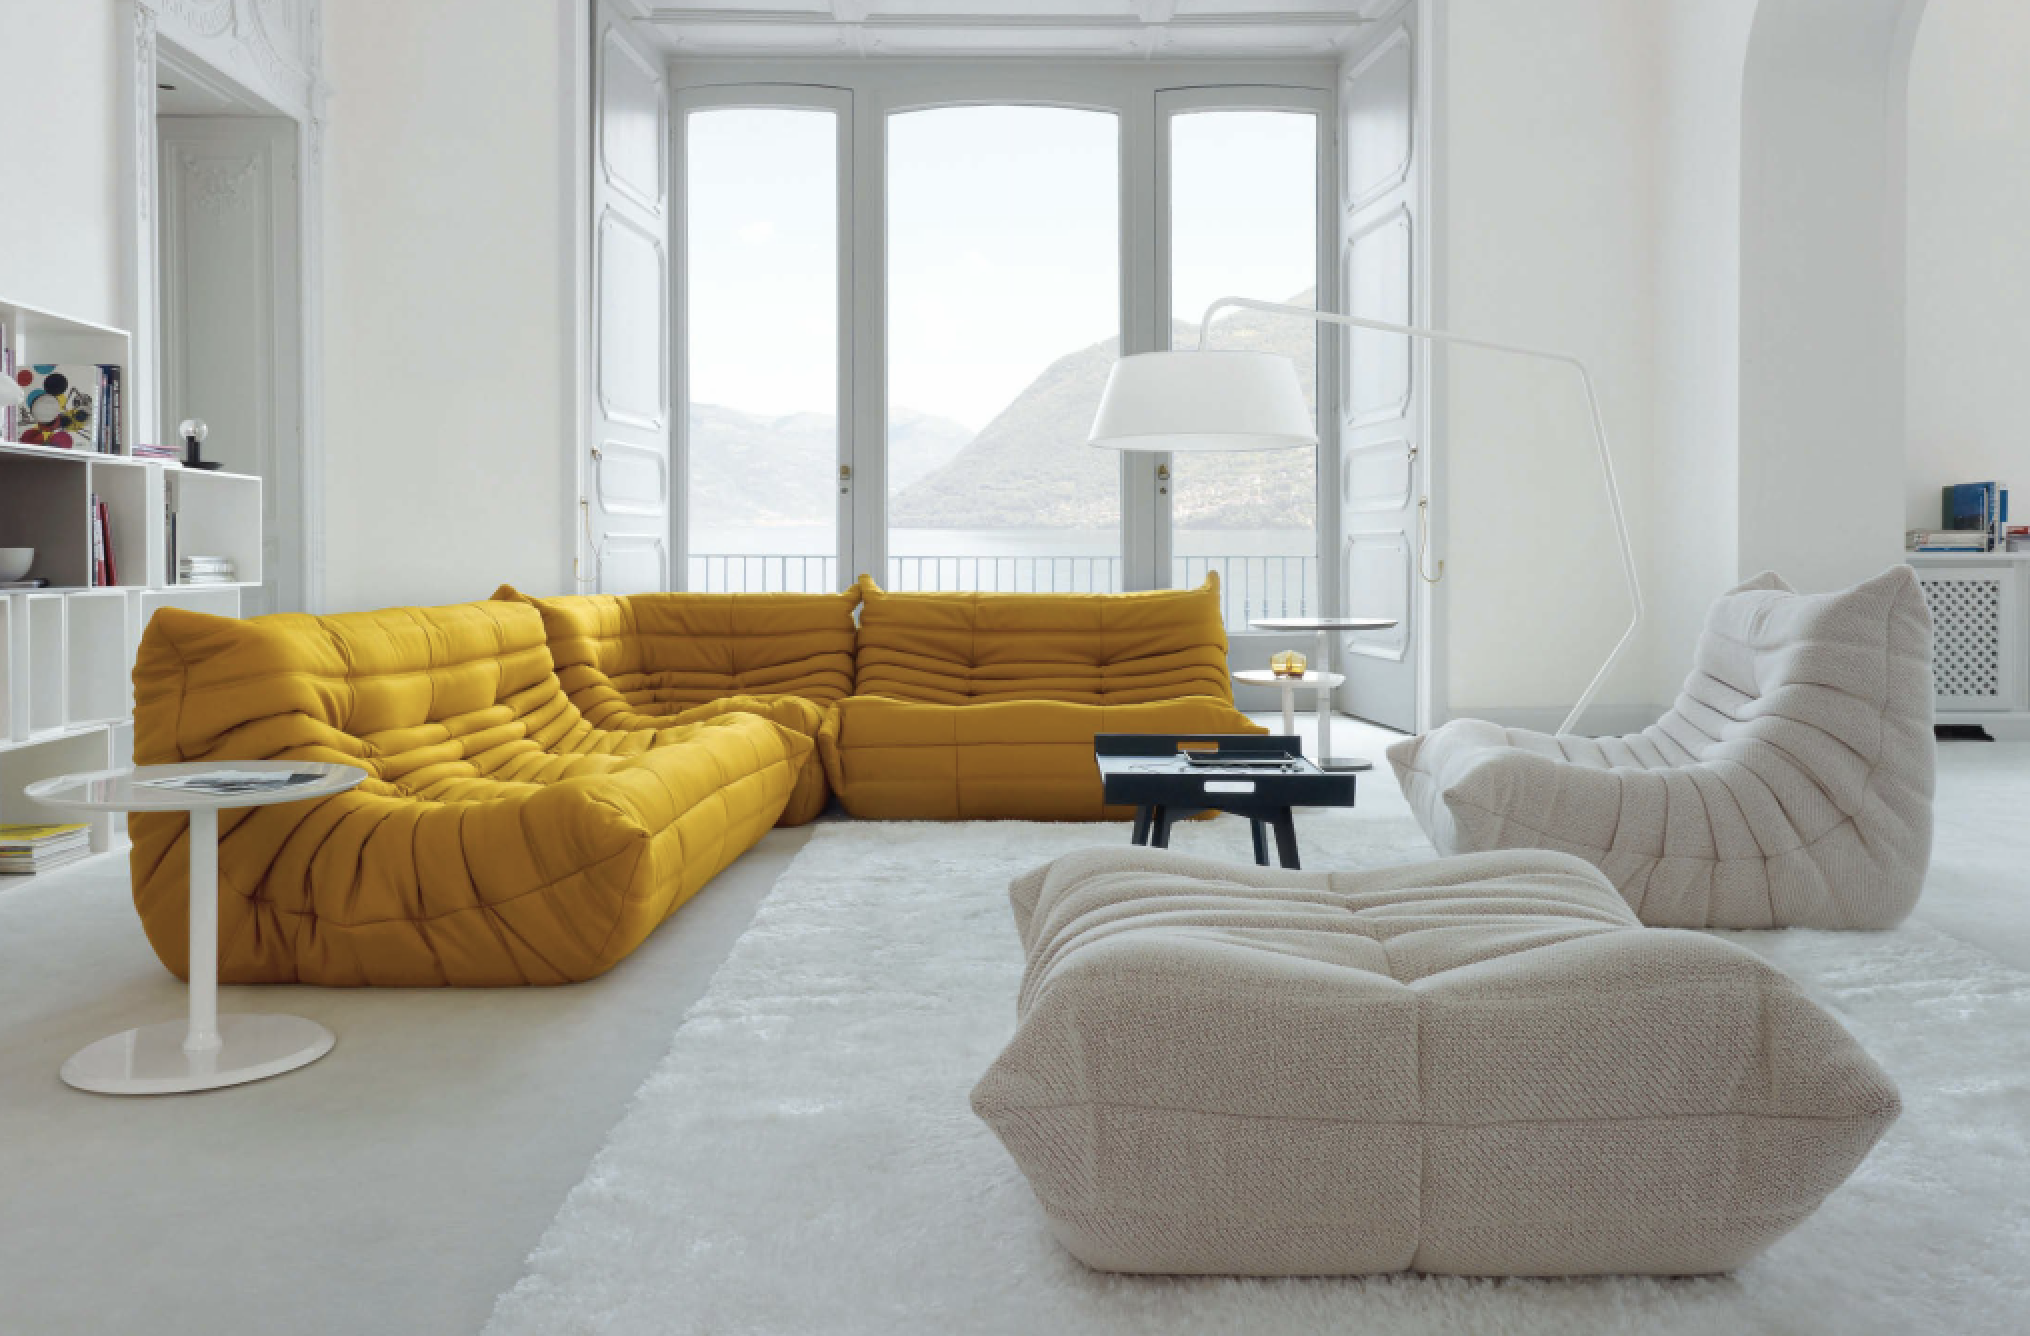 Ligne Roset Multy Slaapbank.Ligne Roset Loncin Interieur A Beautiful Home